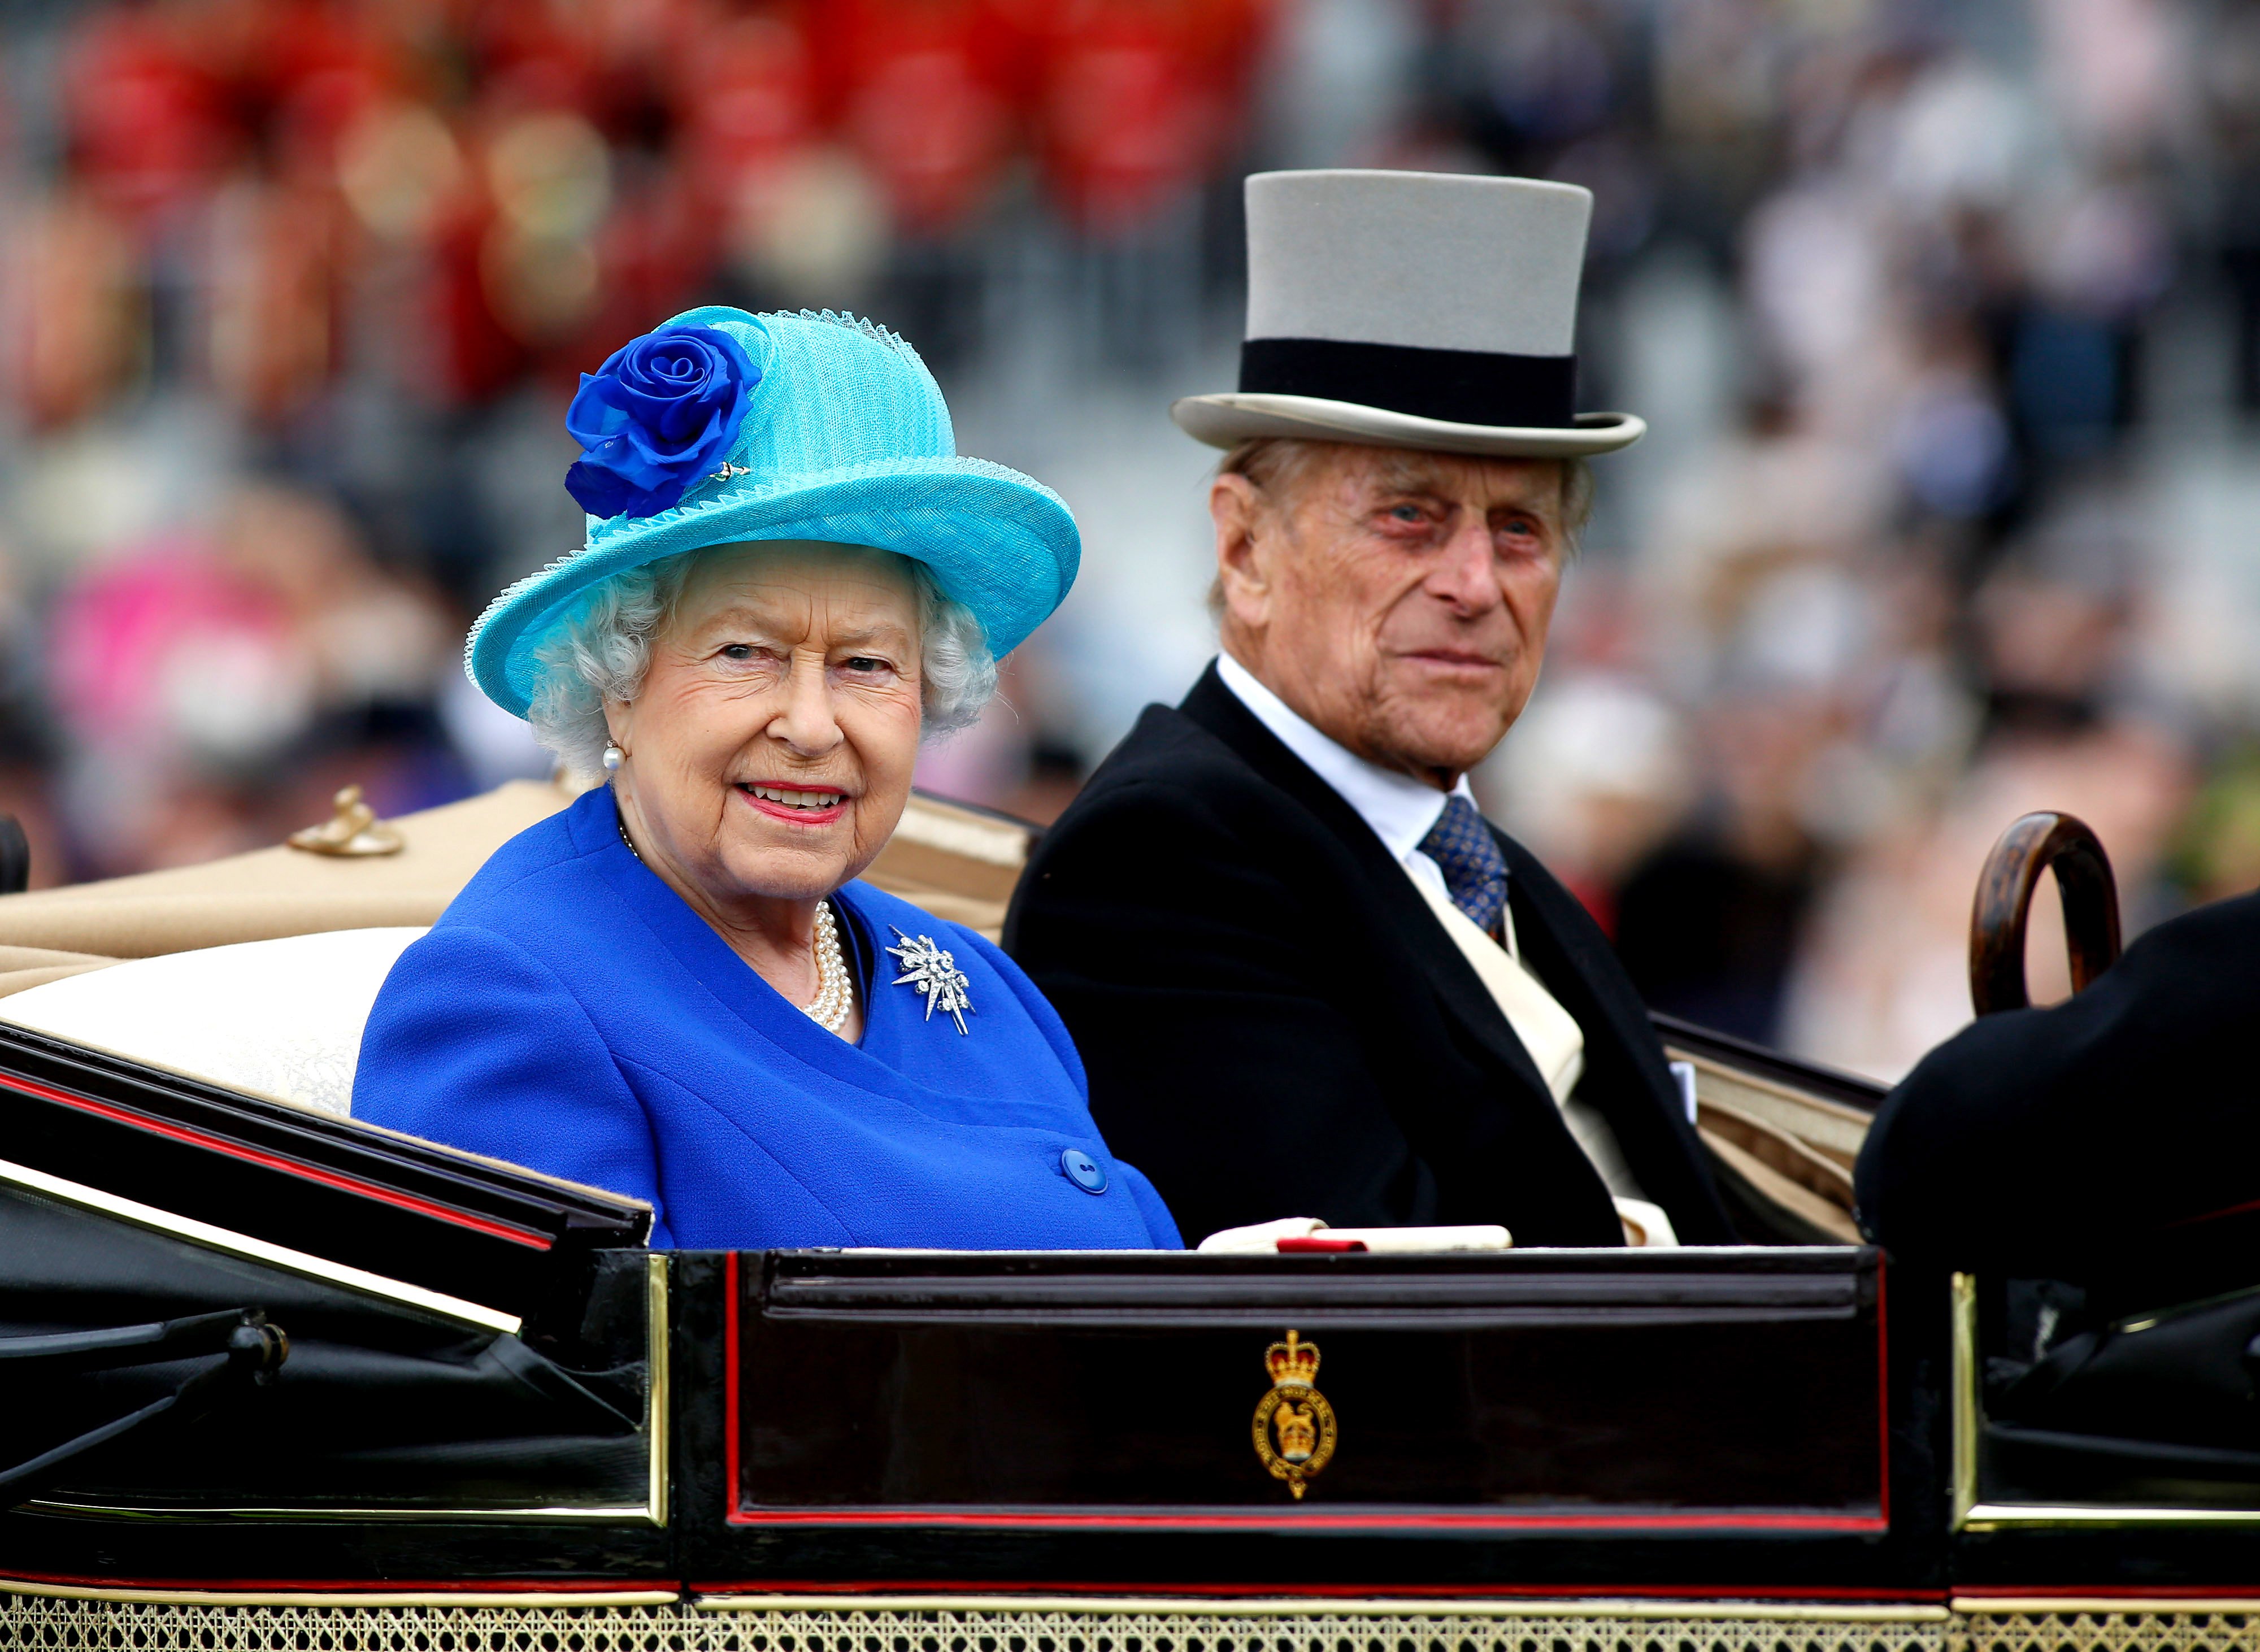 ASCOT, ENGLAND - JUNE 18: Queen Elizabeth II and Prince Philip, Duke of Edinburgh take part in the carriage procession during Day Five of Royal Ascot at Ascot Racecourse on June 18, 2016 in Ascot, England. (Photo by Julian Herbert/Getty Images)